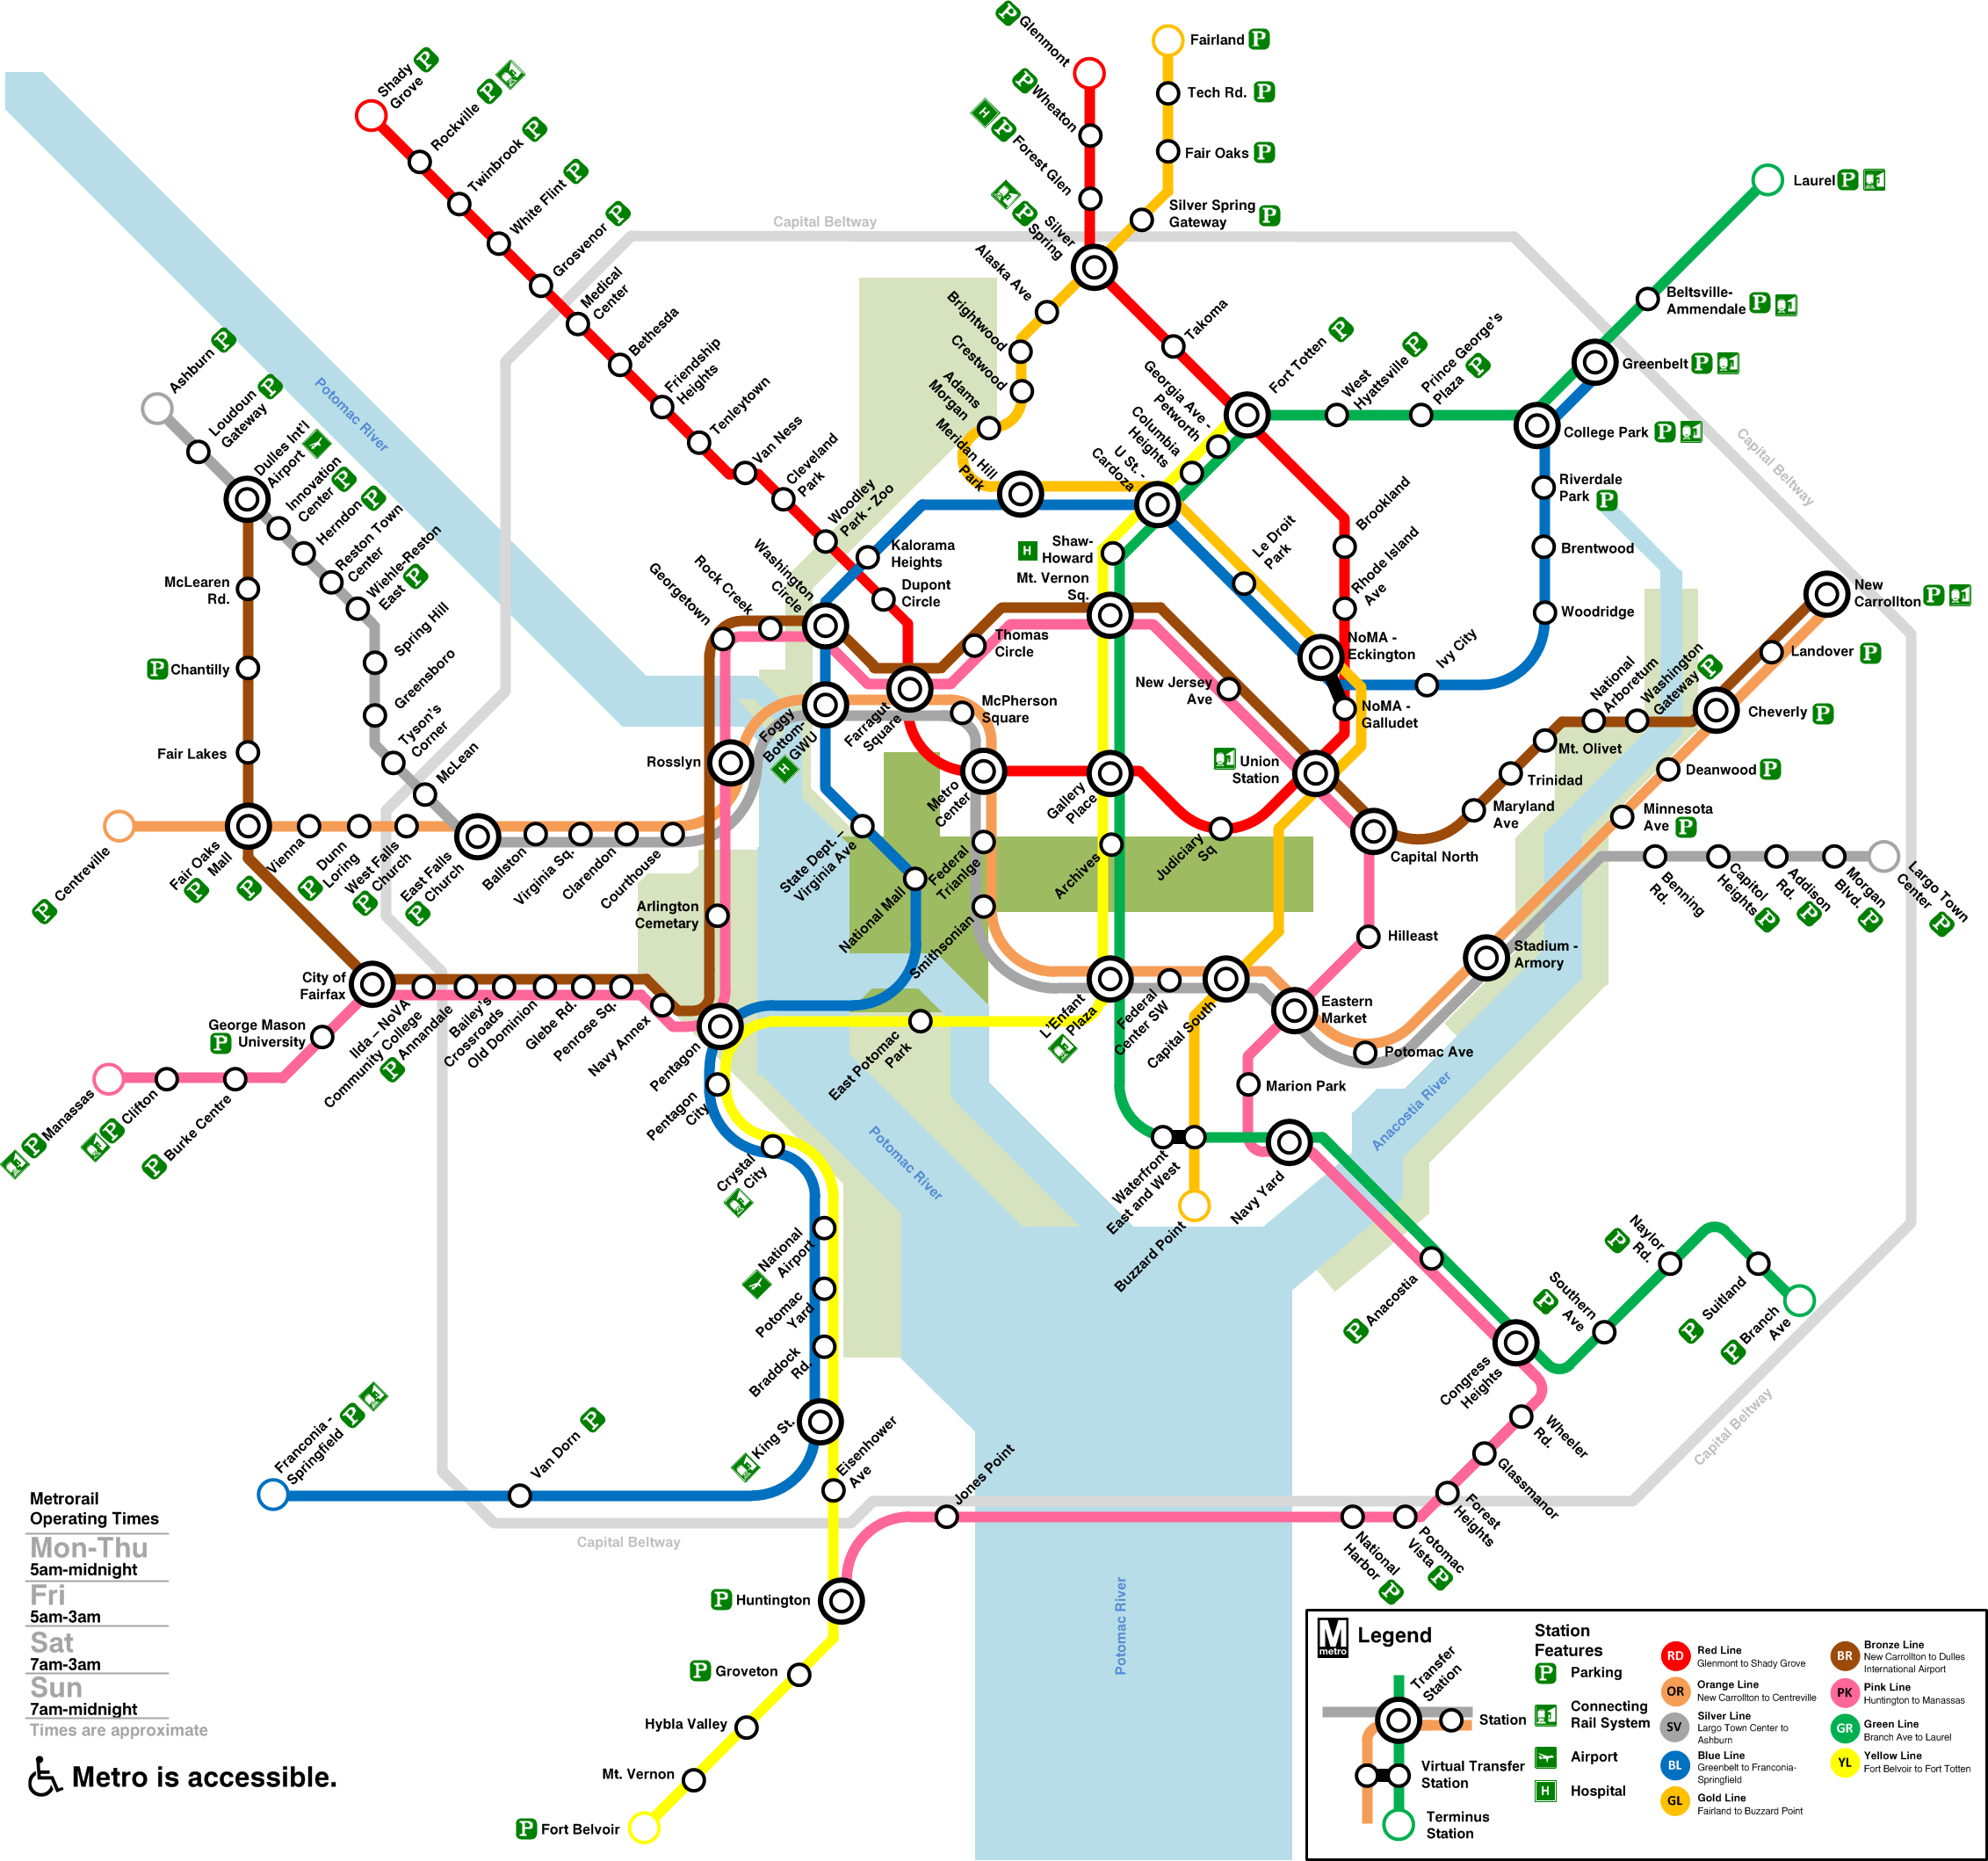 Dc Metro Subway Map DC Metro Dream Map | Washington metro, Dc metro map, Metro map